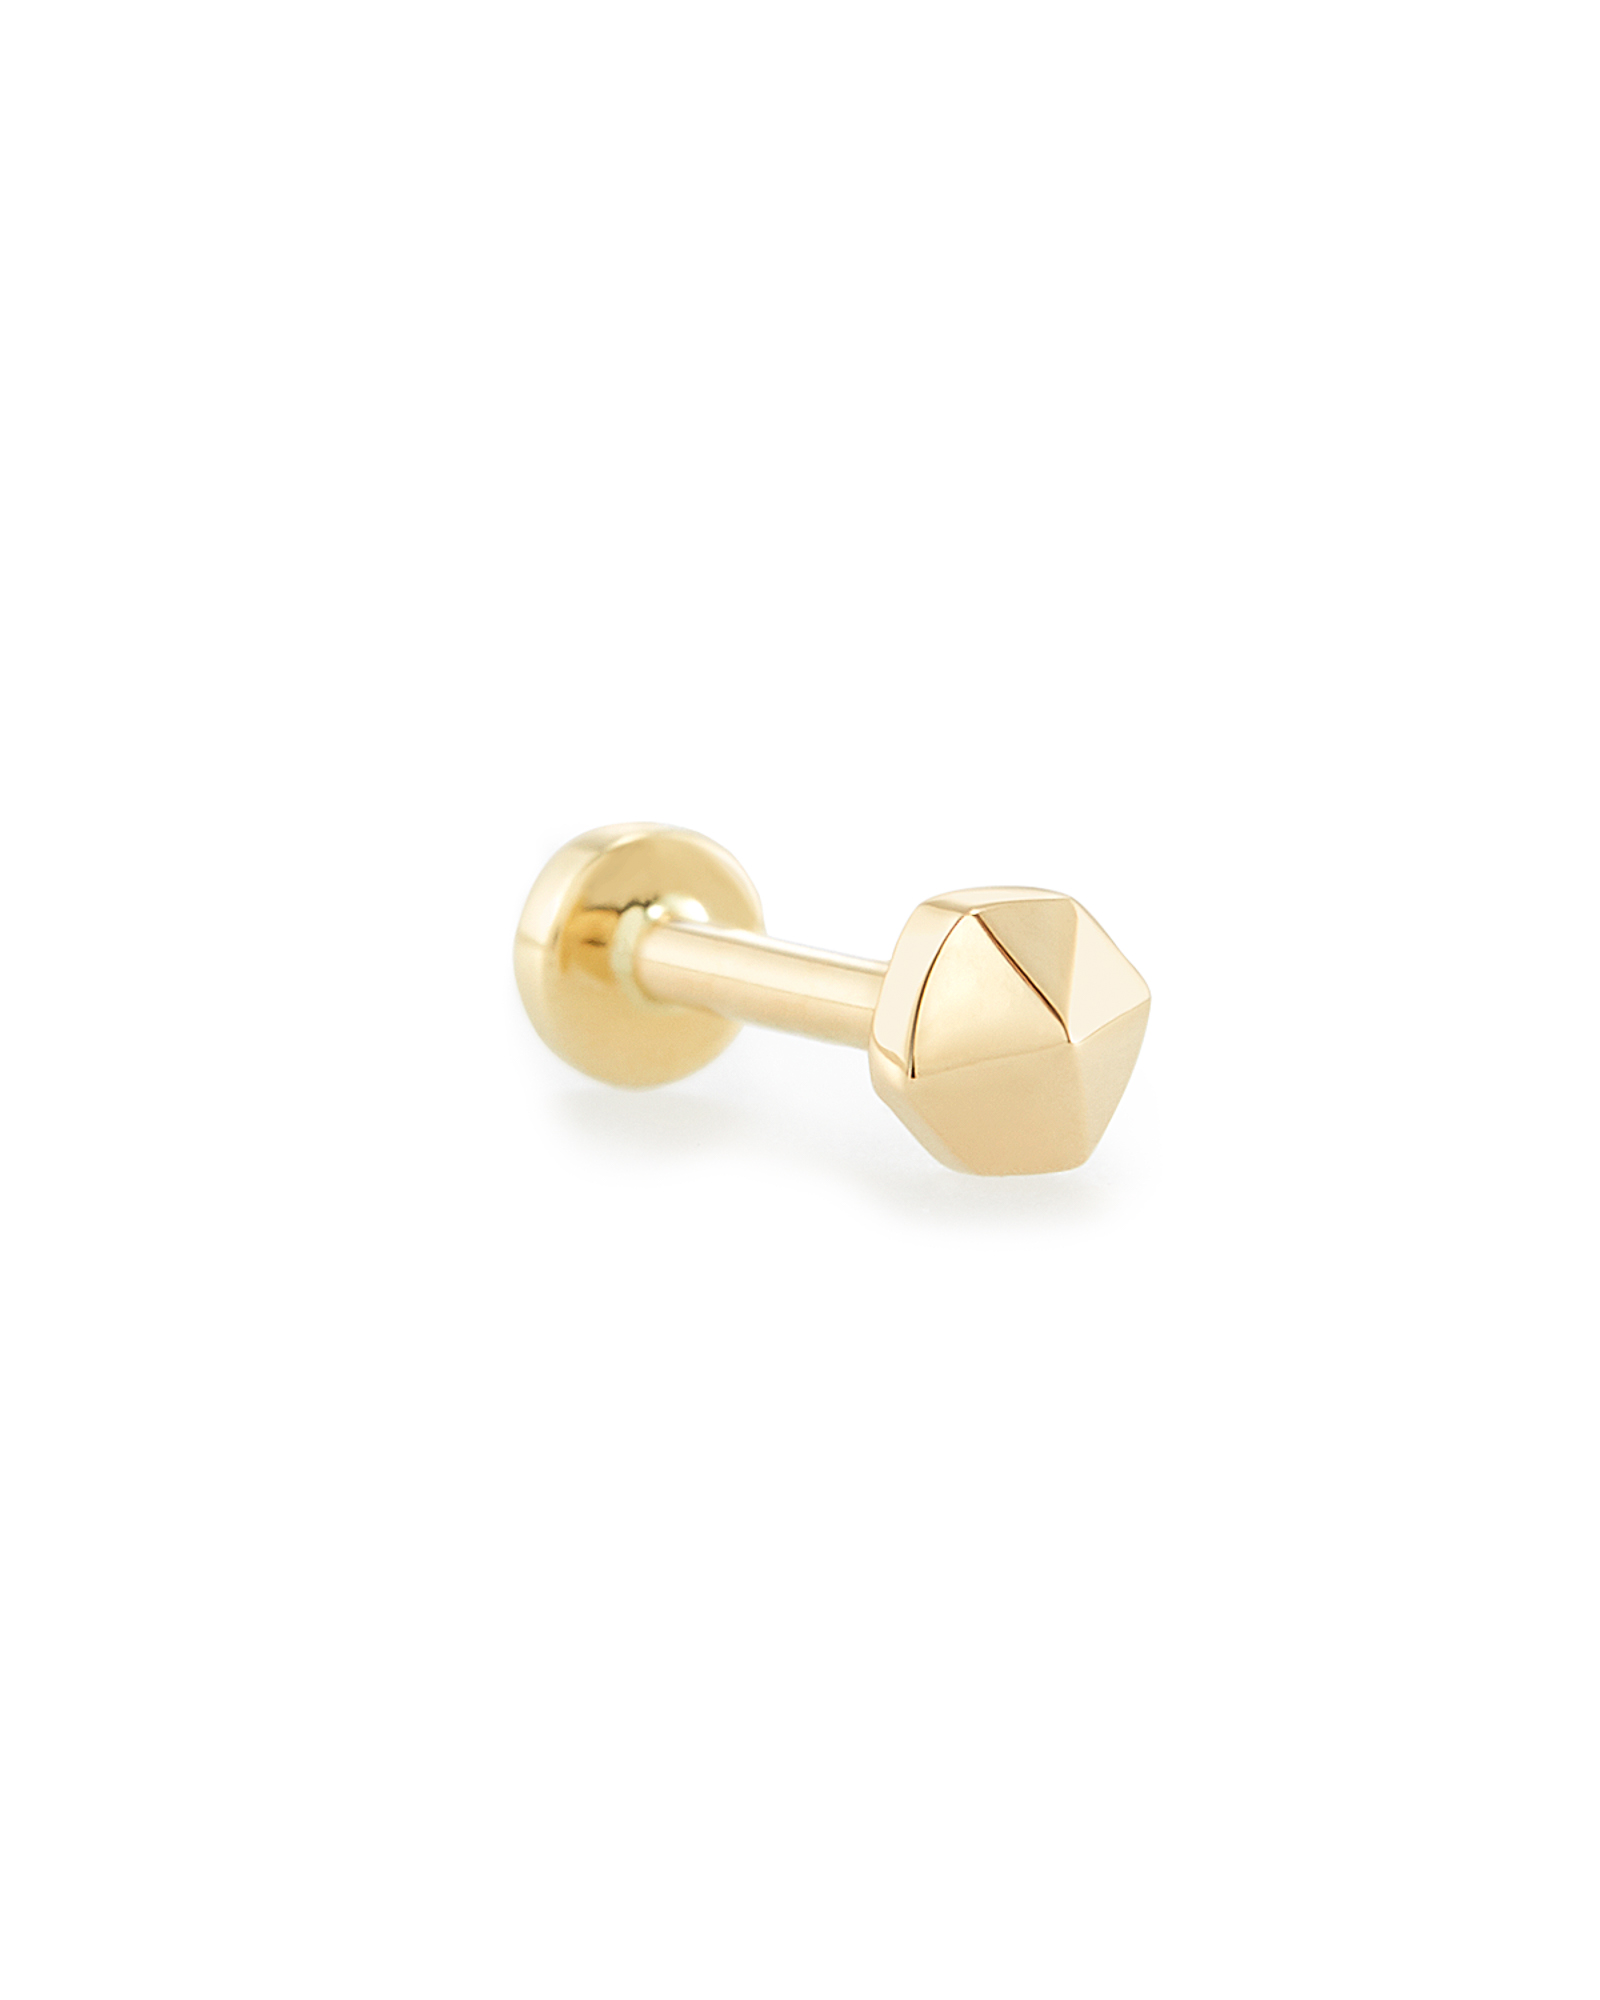 Payson Mini Stud Earring in 14K Yellow Gold